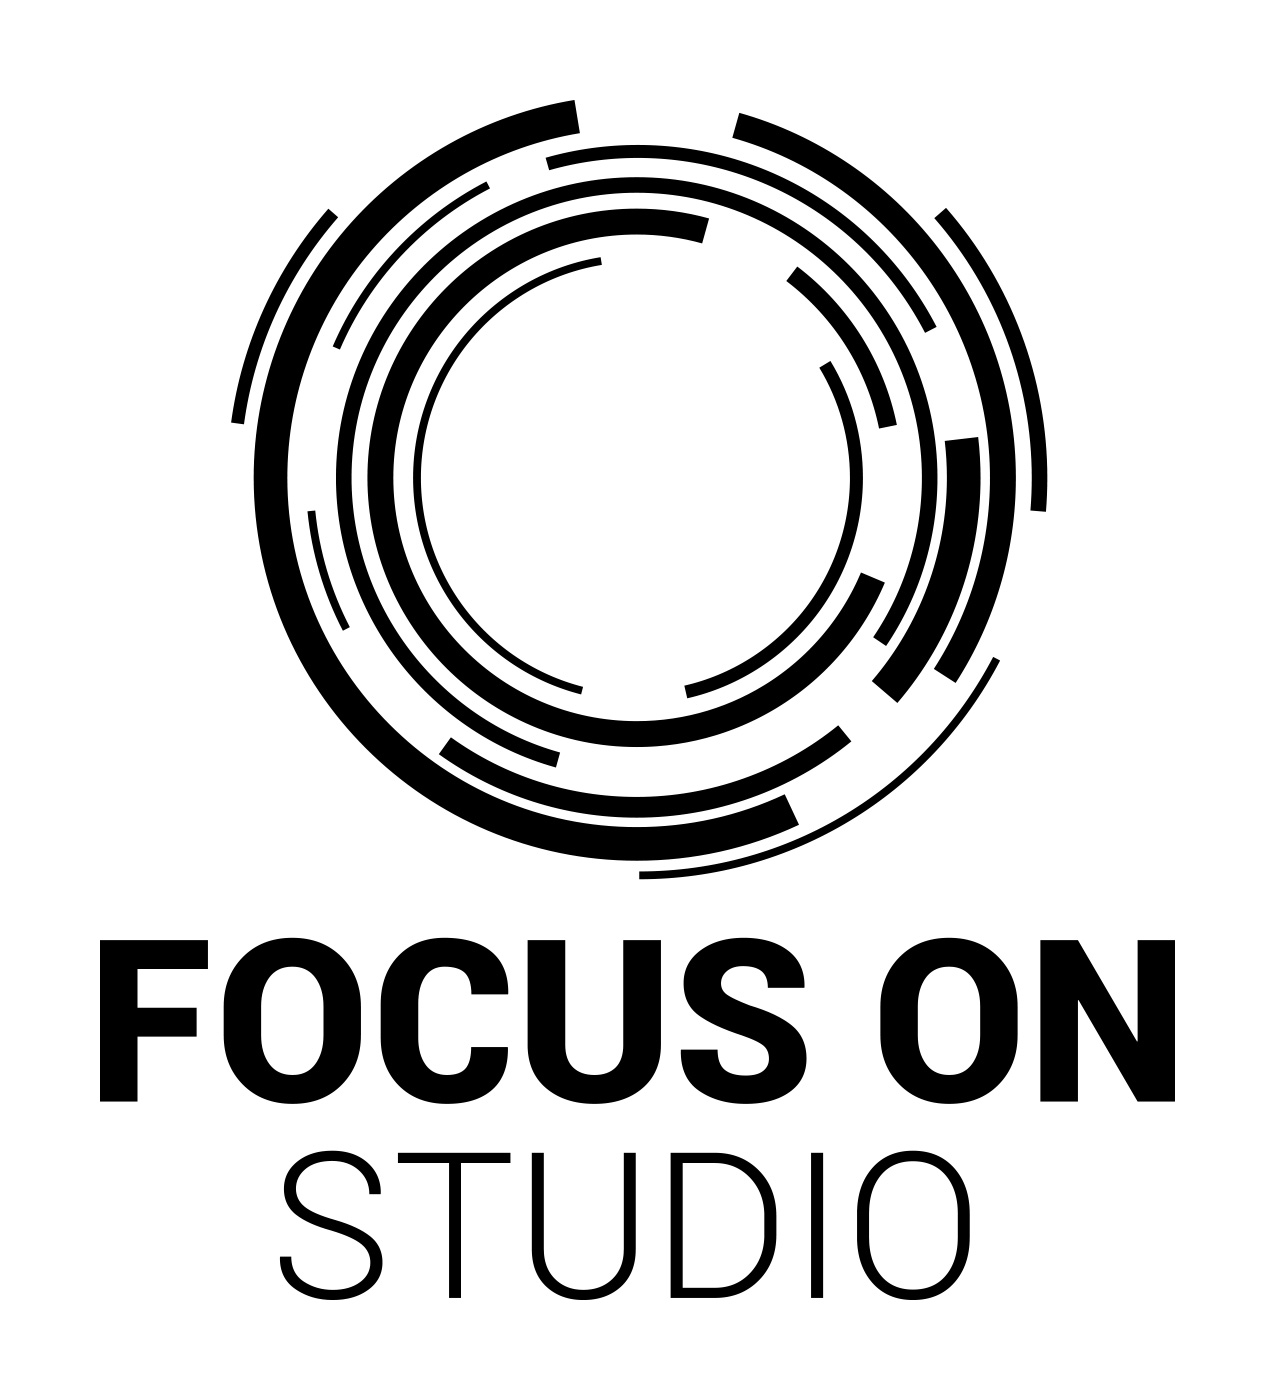 FocusOnStudio